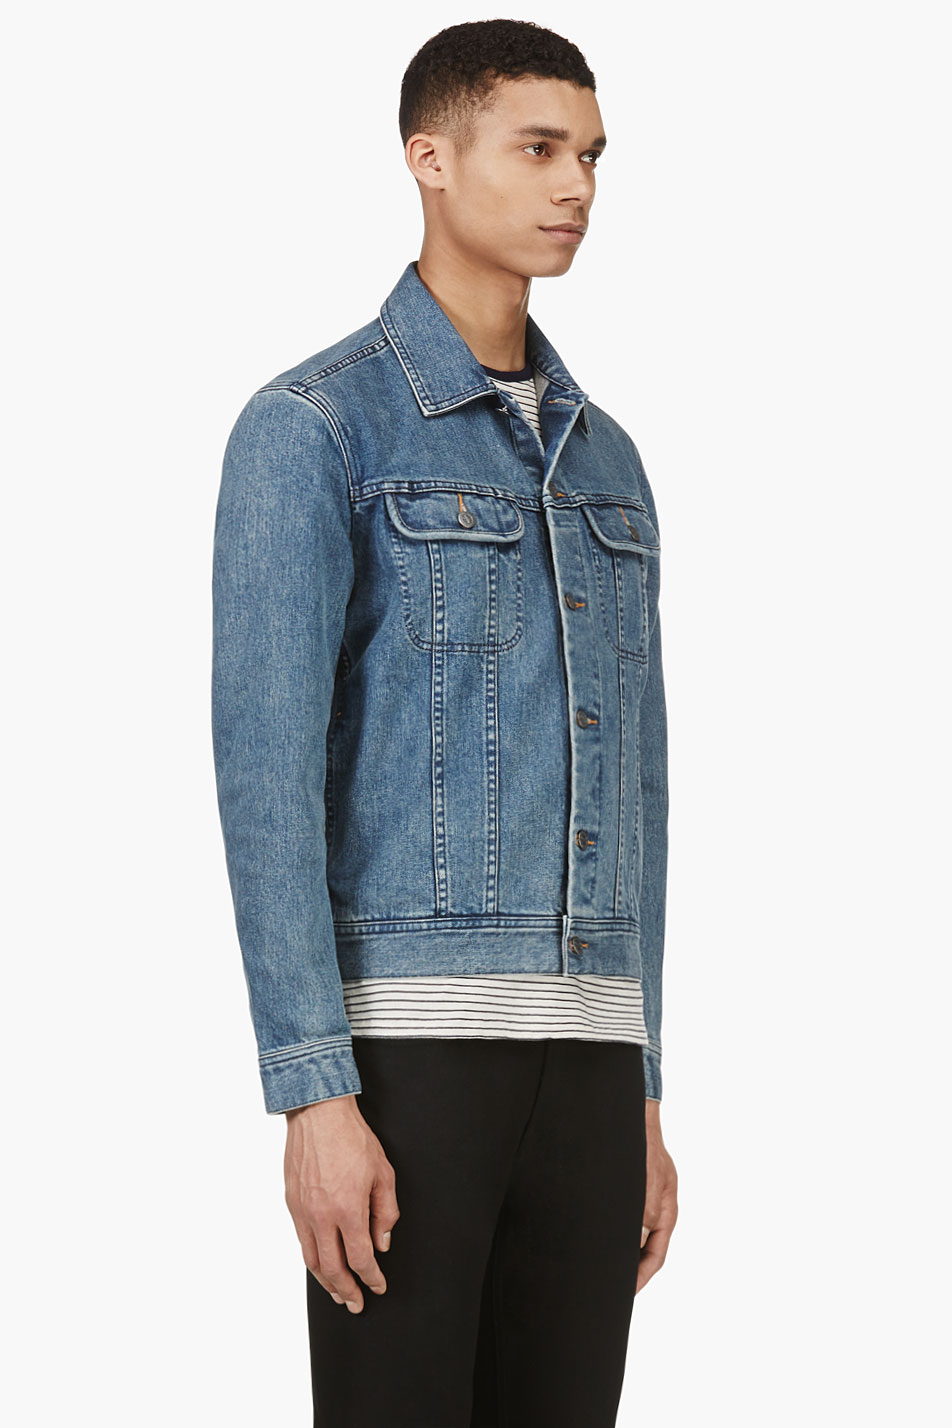 Lyst A P C Indigo Classic Denim Jacket In Blue For Men